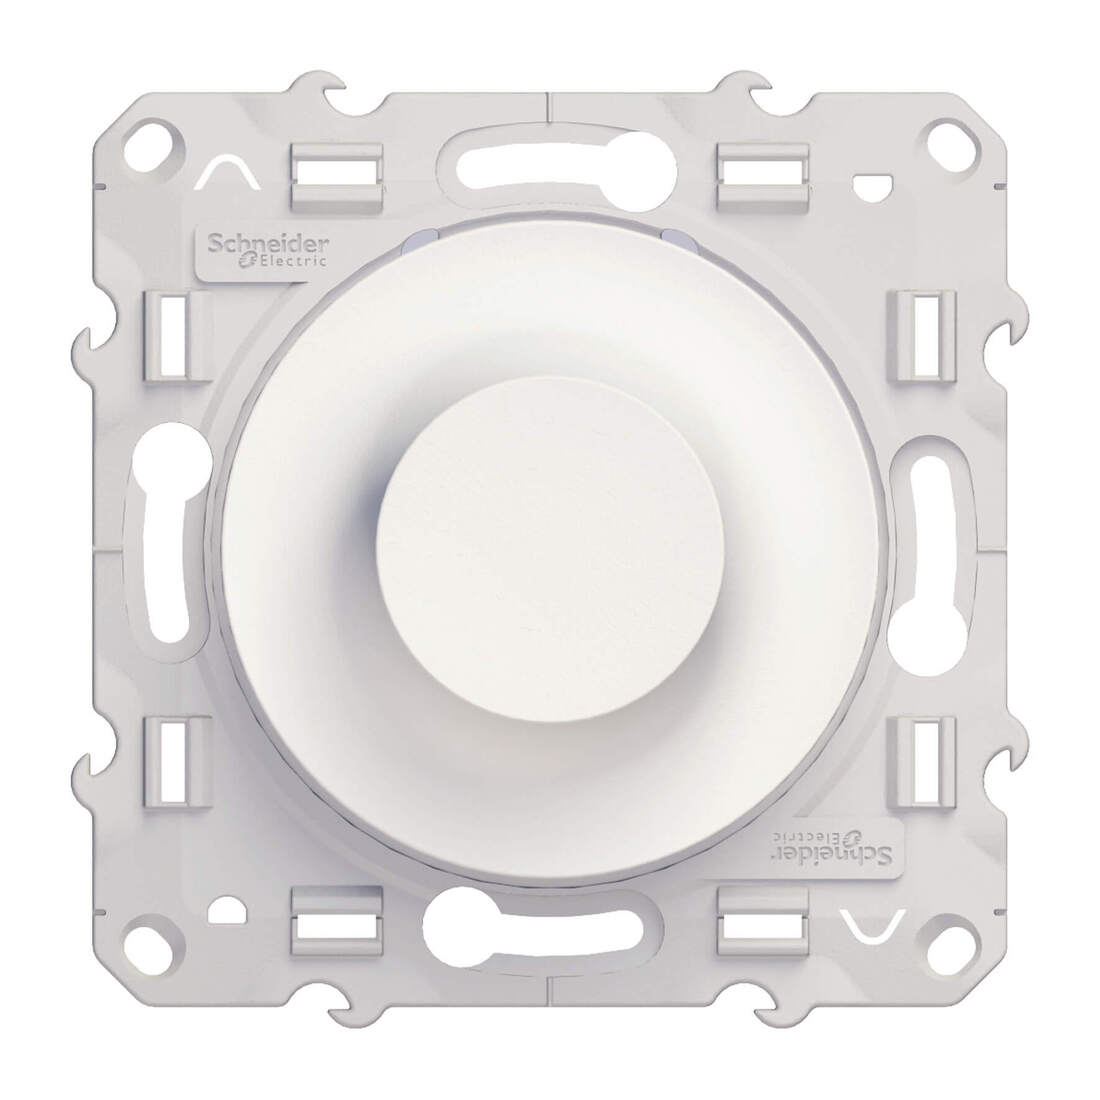 Schneider Electric Odace draaidimmer speciale lampen 9-100W - wit (S520518)